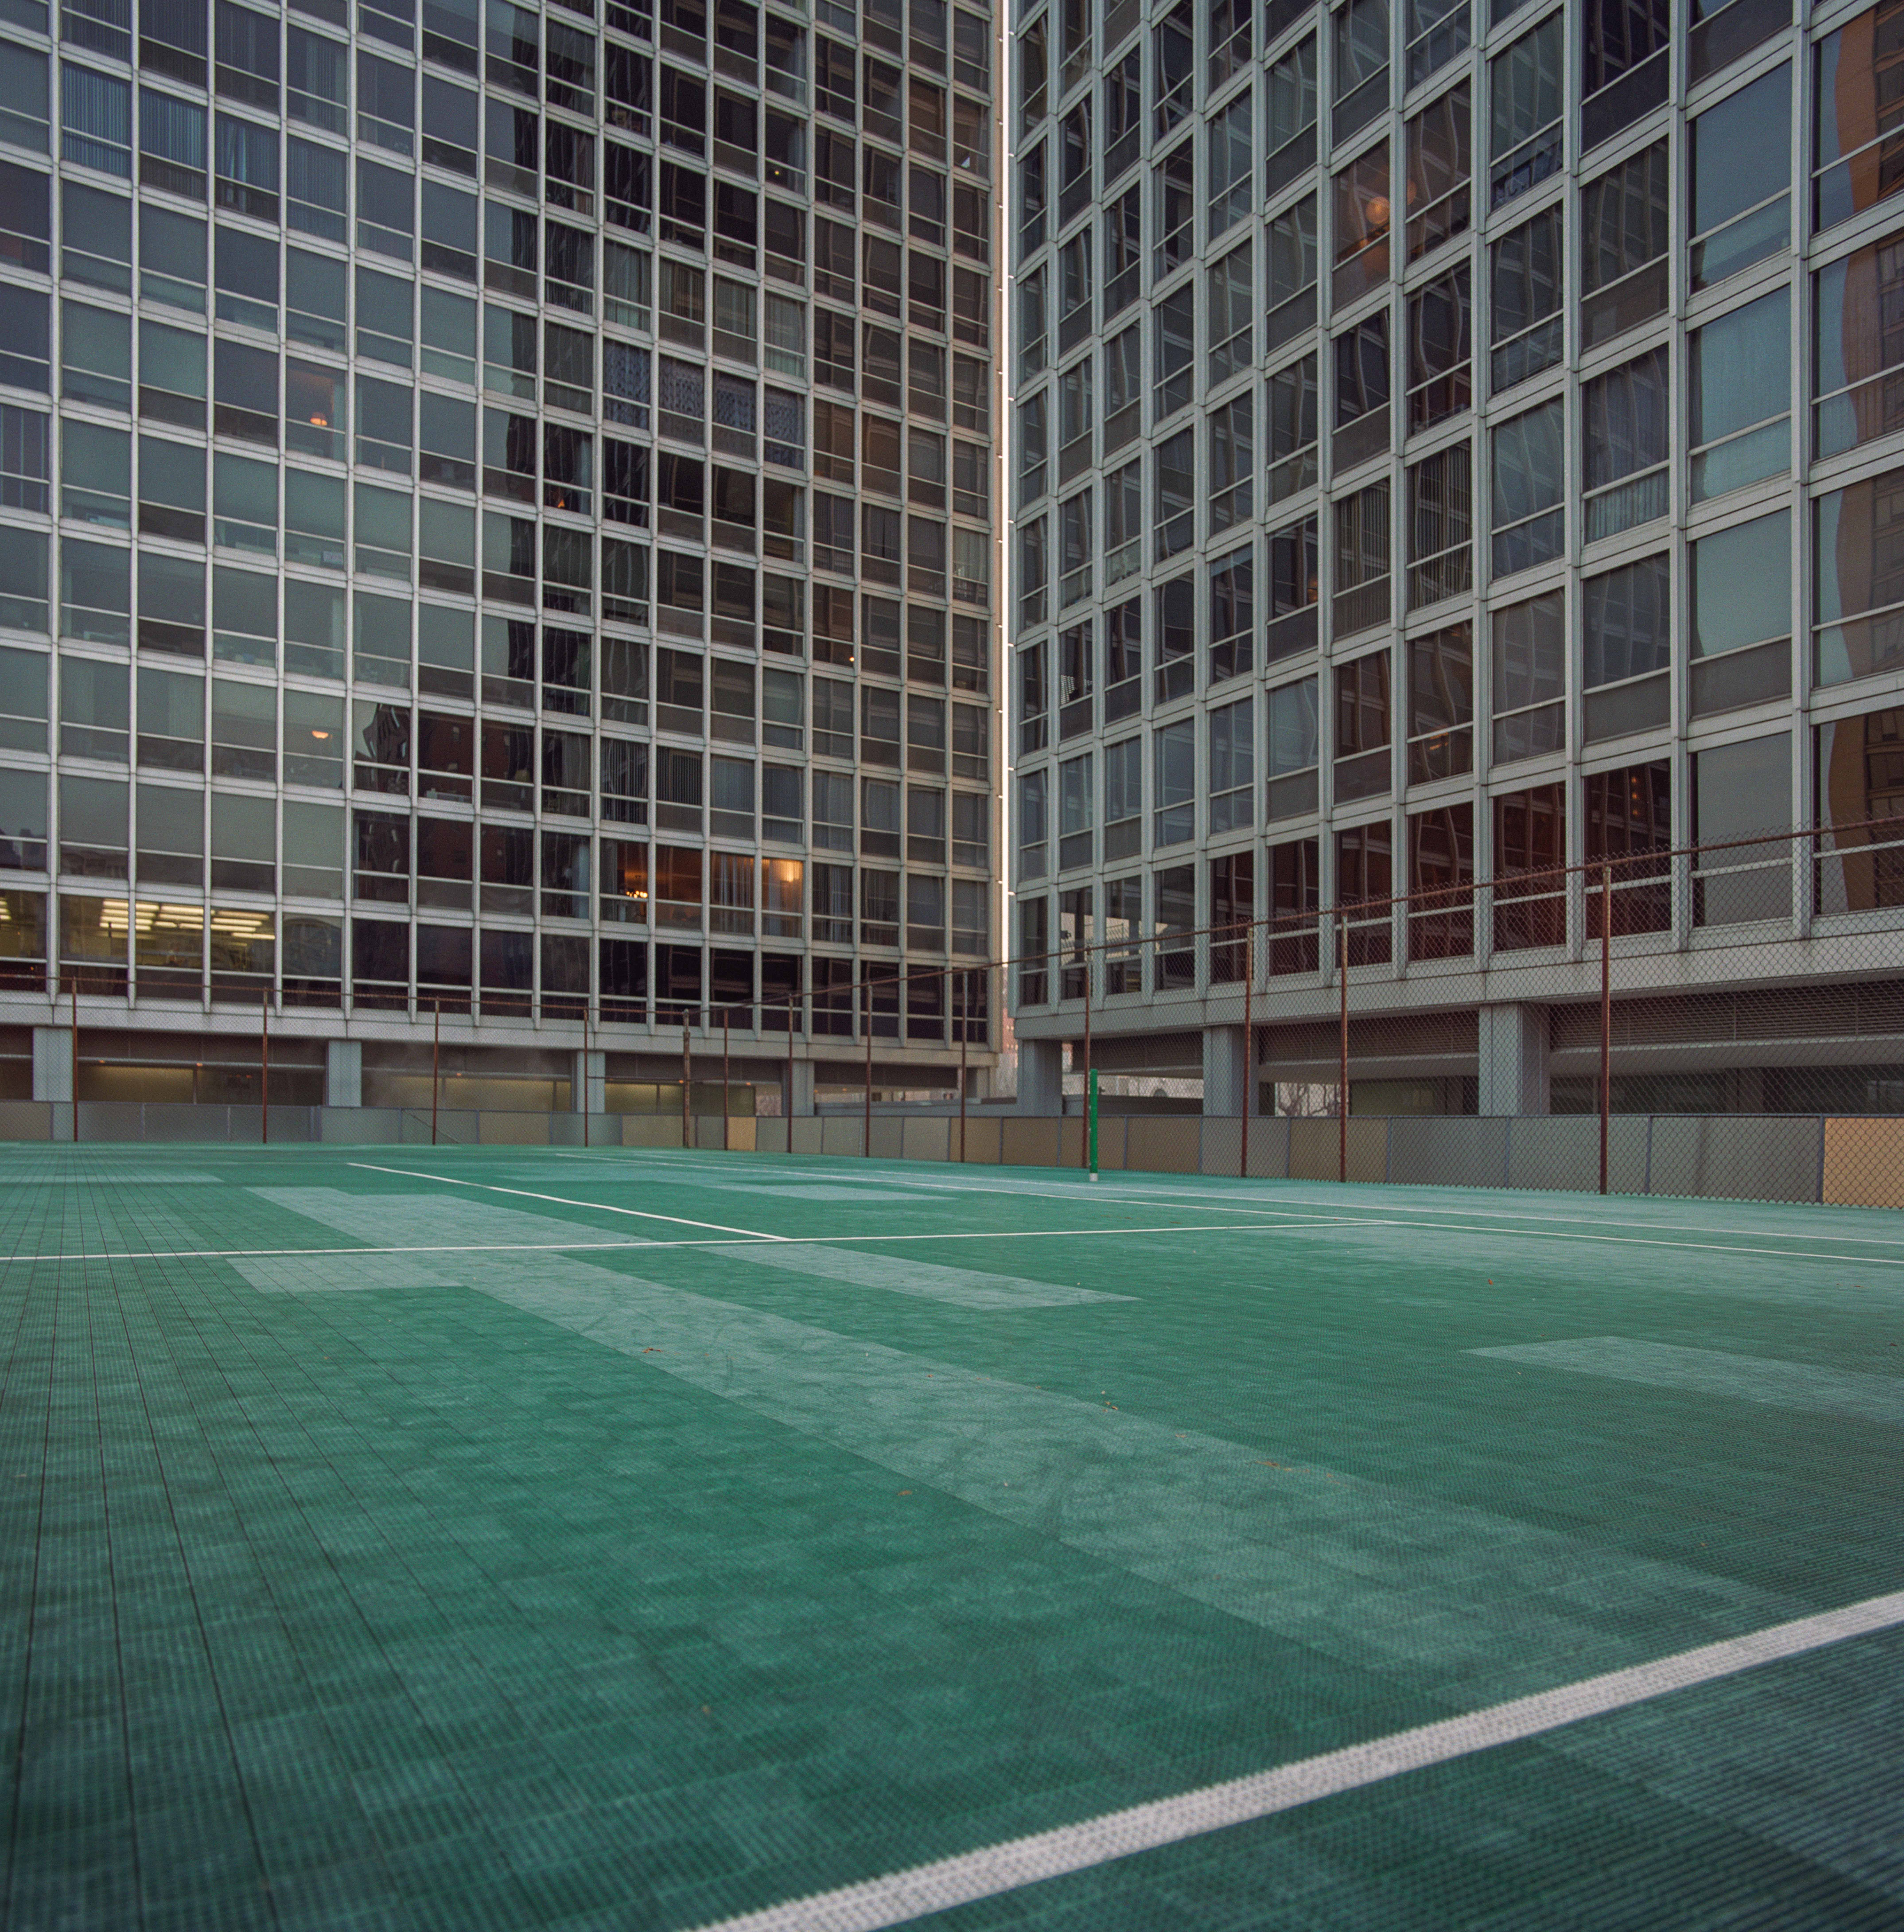 Empty tennis courts surrounded by high rises in Chicago, Illinois